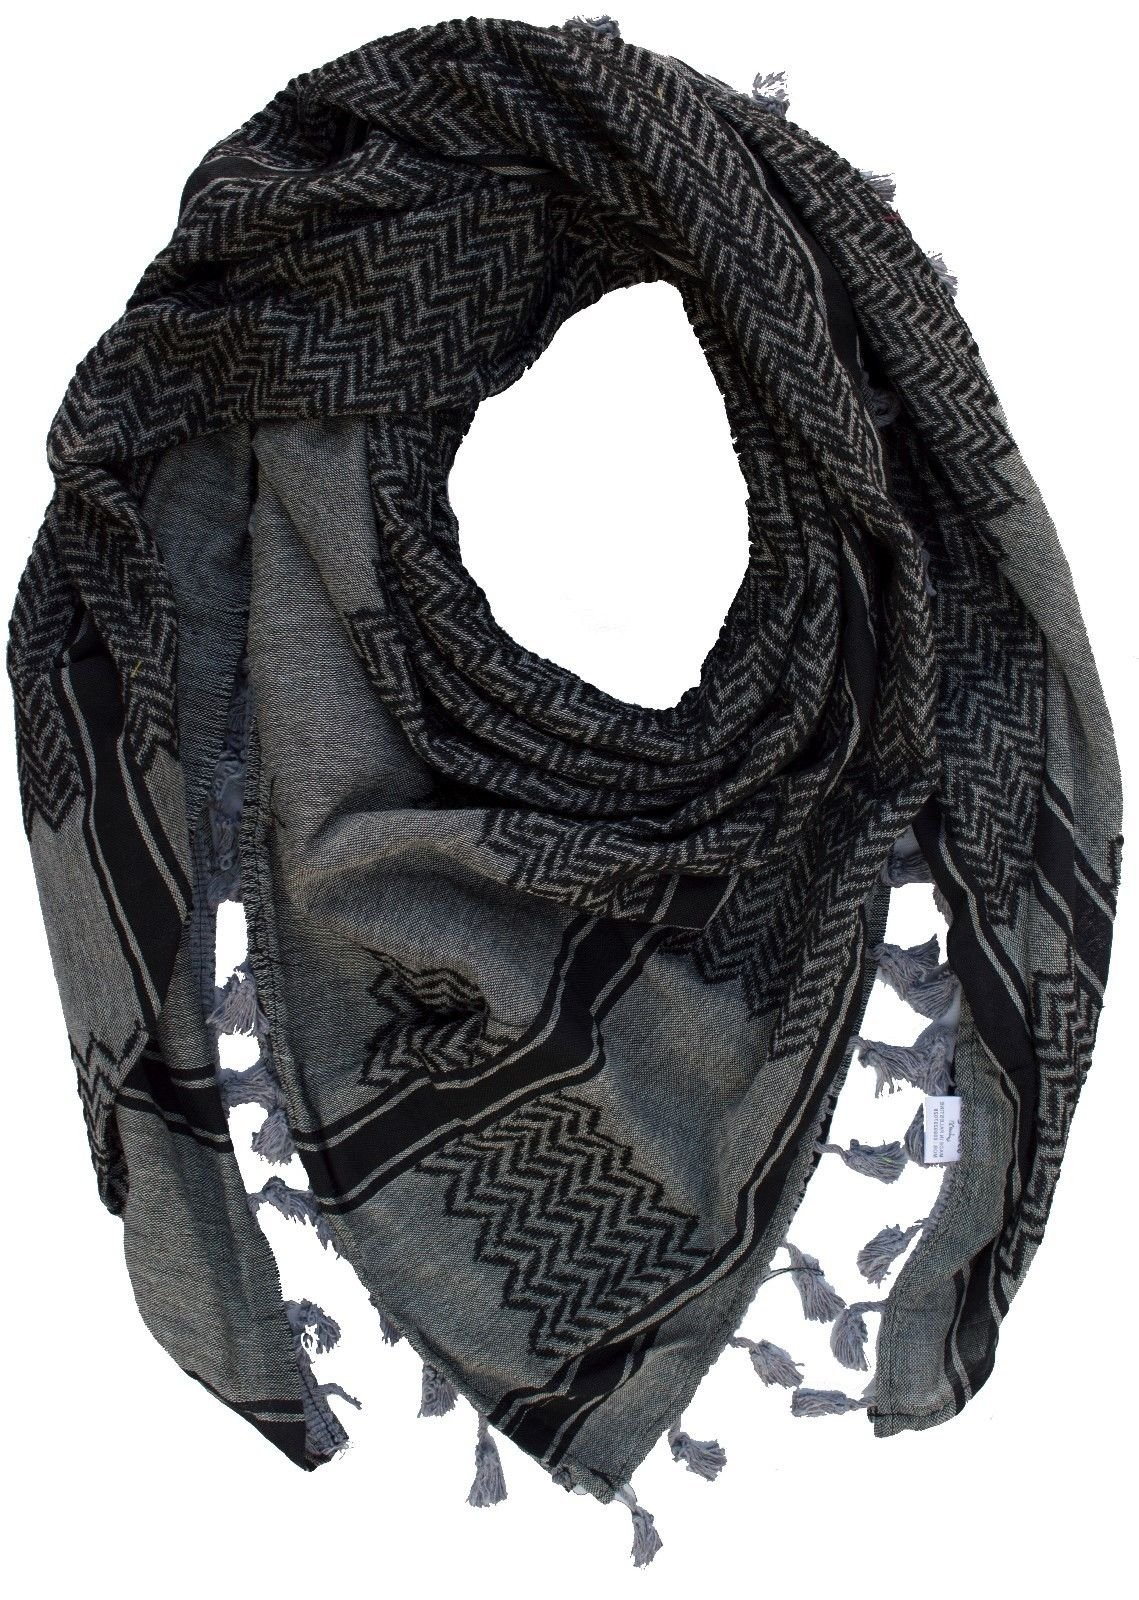 Mlgogo 100% Cotton Fashion Dessert Tactical Military Shemagh Scarf